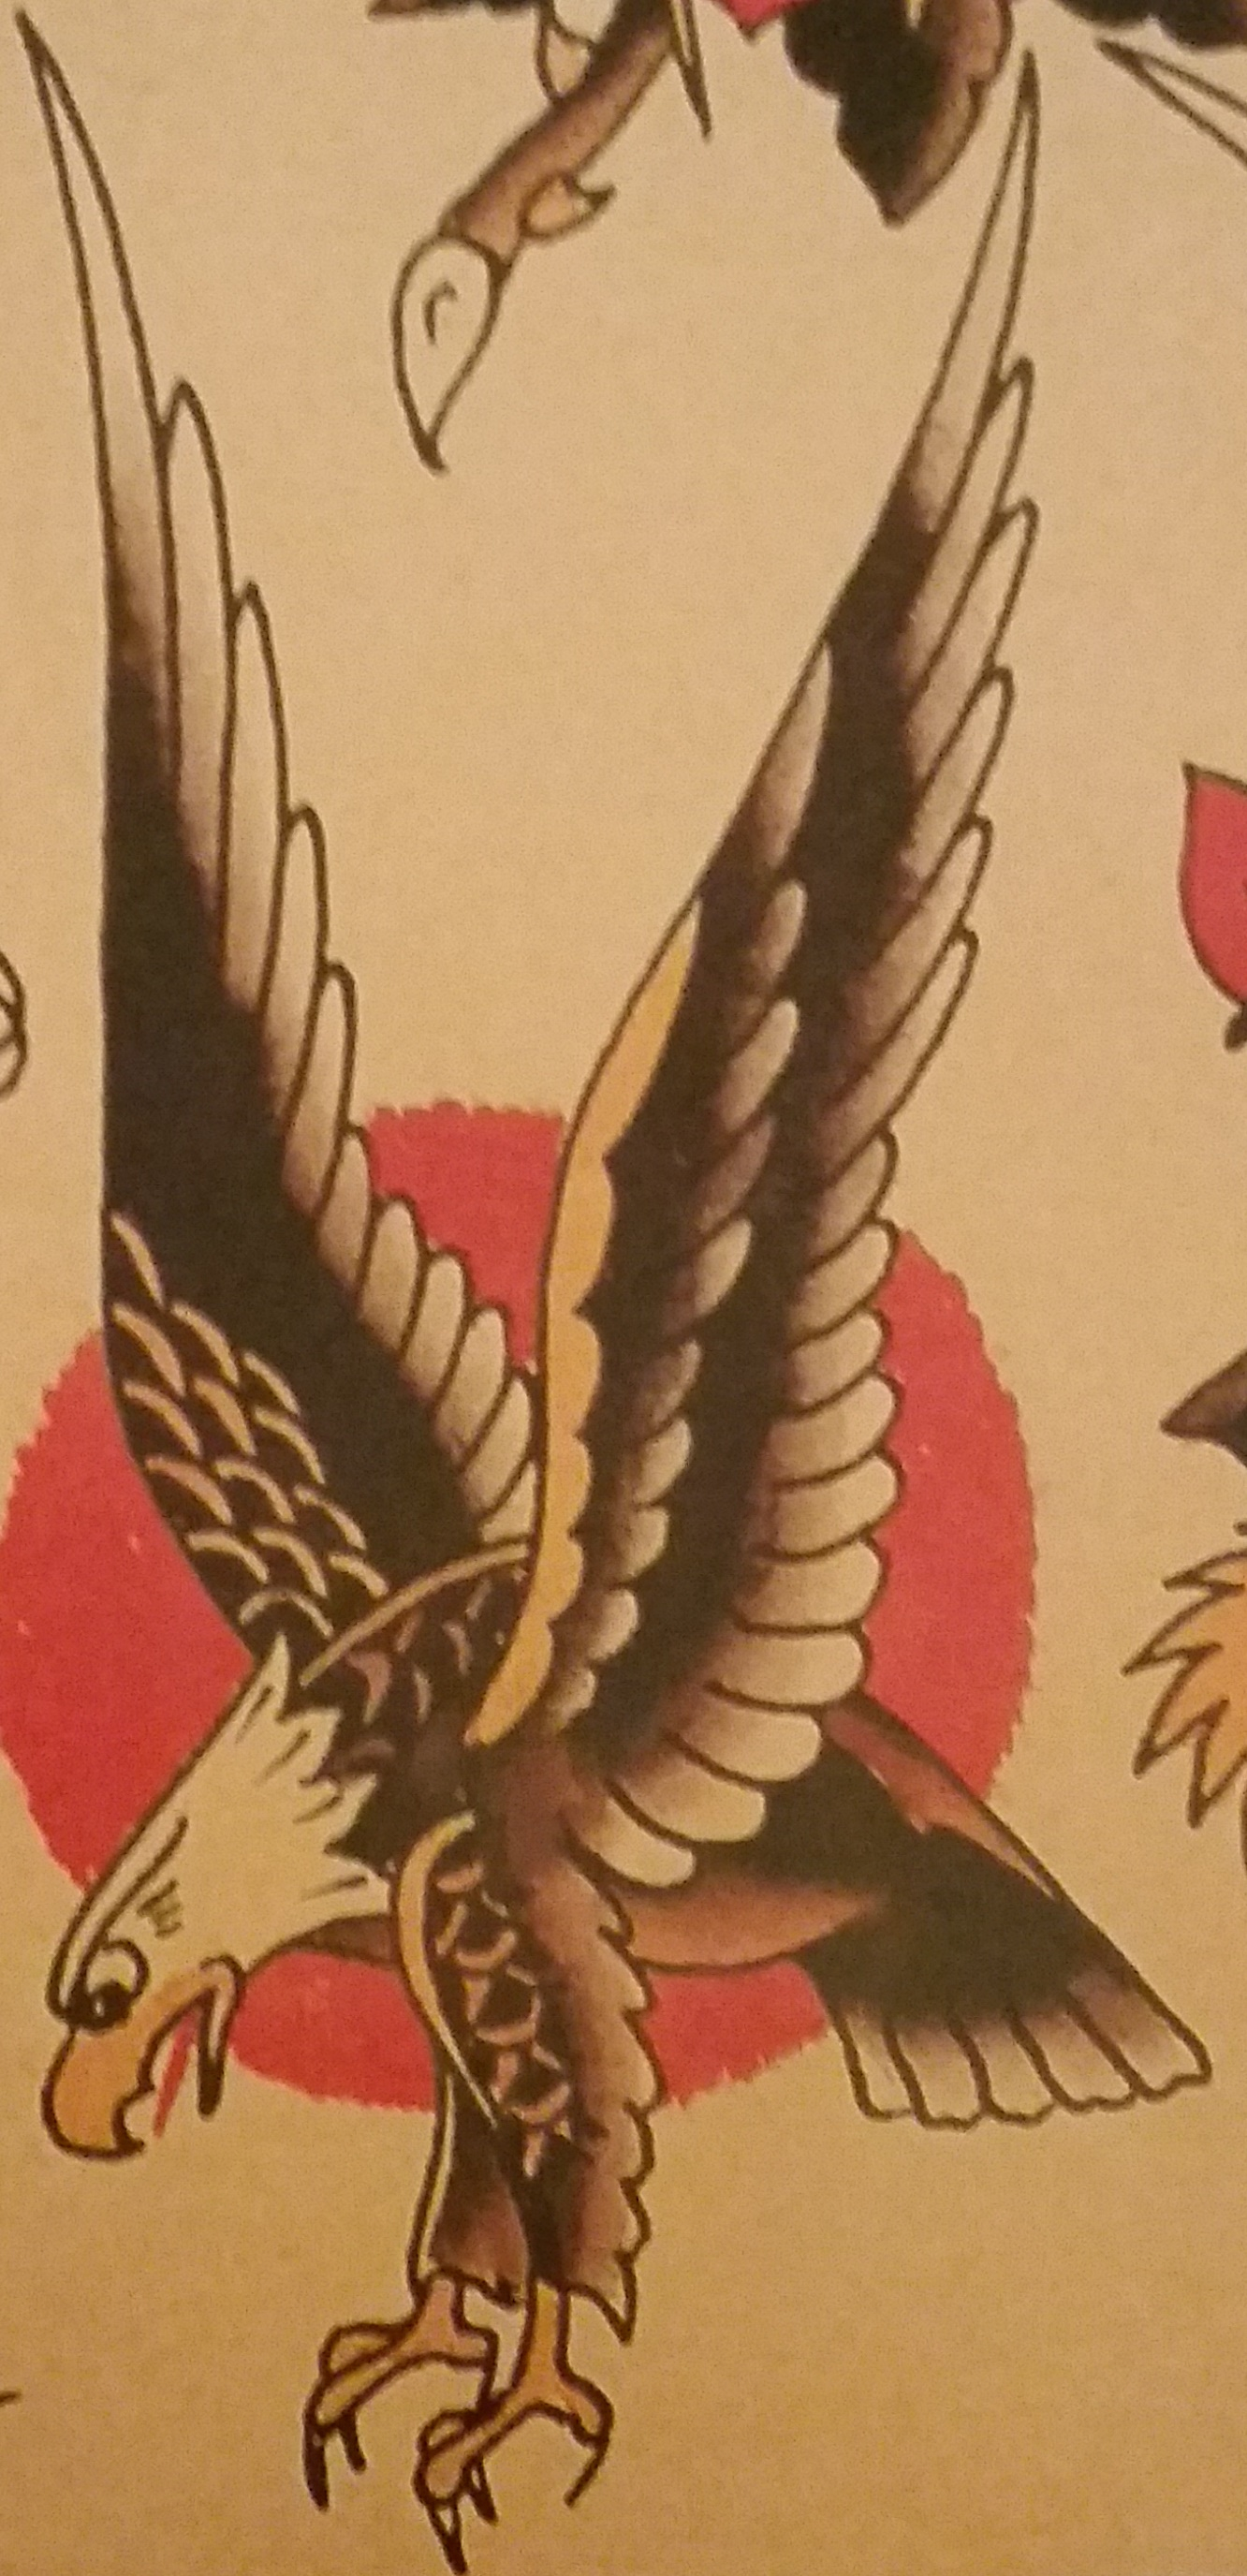 28d0a7f9d Traditional Sailor Jerry American Eagle Tattoo - All Tattoos For-Men